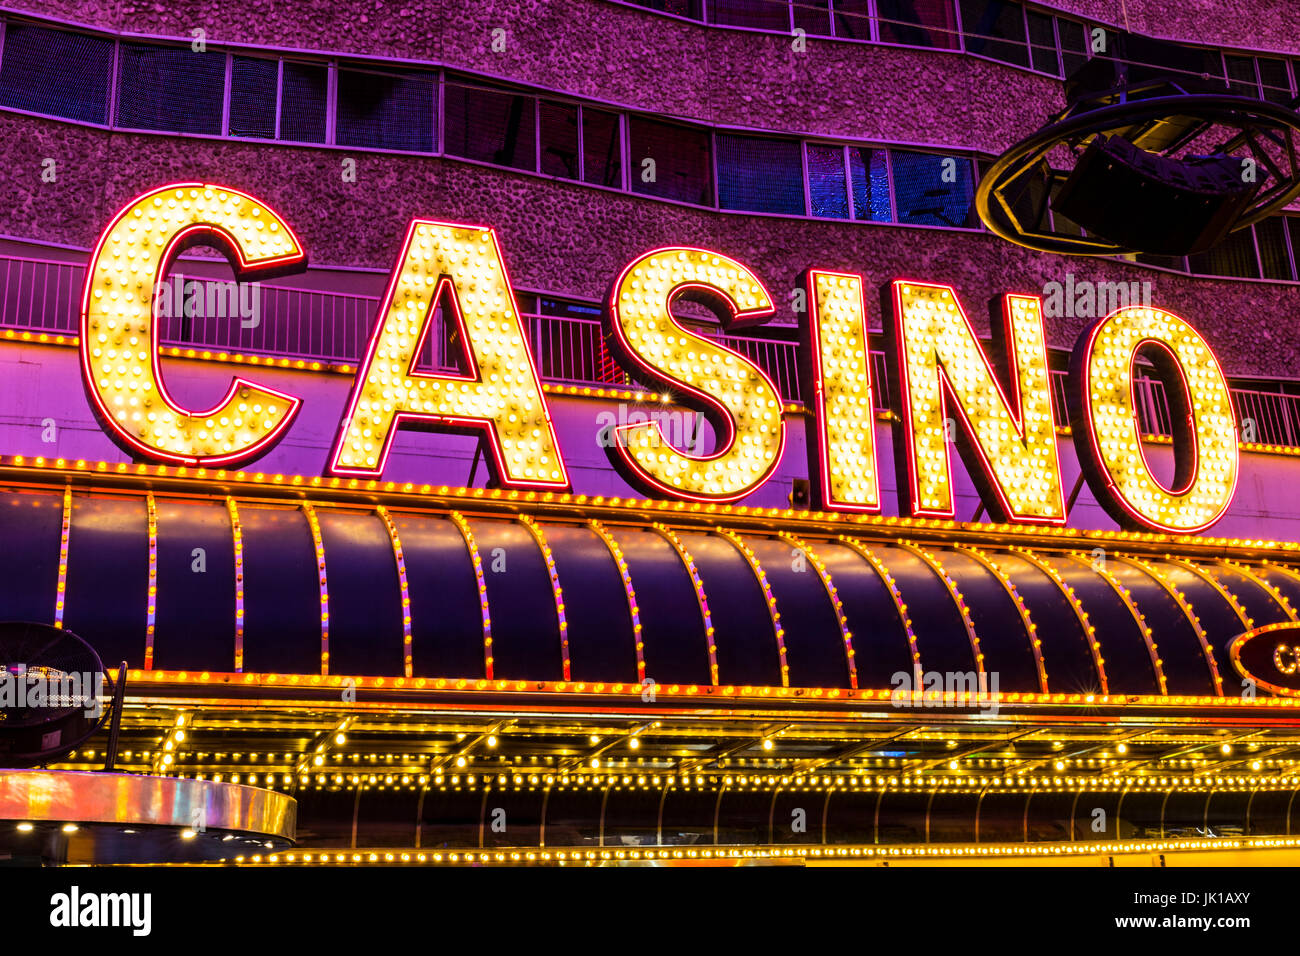 las vegas ca juli 2017 neon casino schild an der fremont street experience fremont street. Black Bedroom Furniture Sets. Home Design Ideas